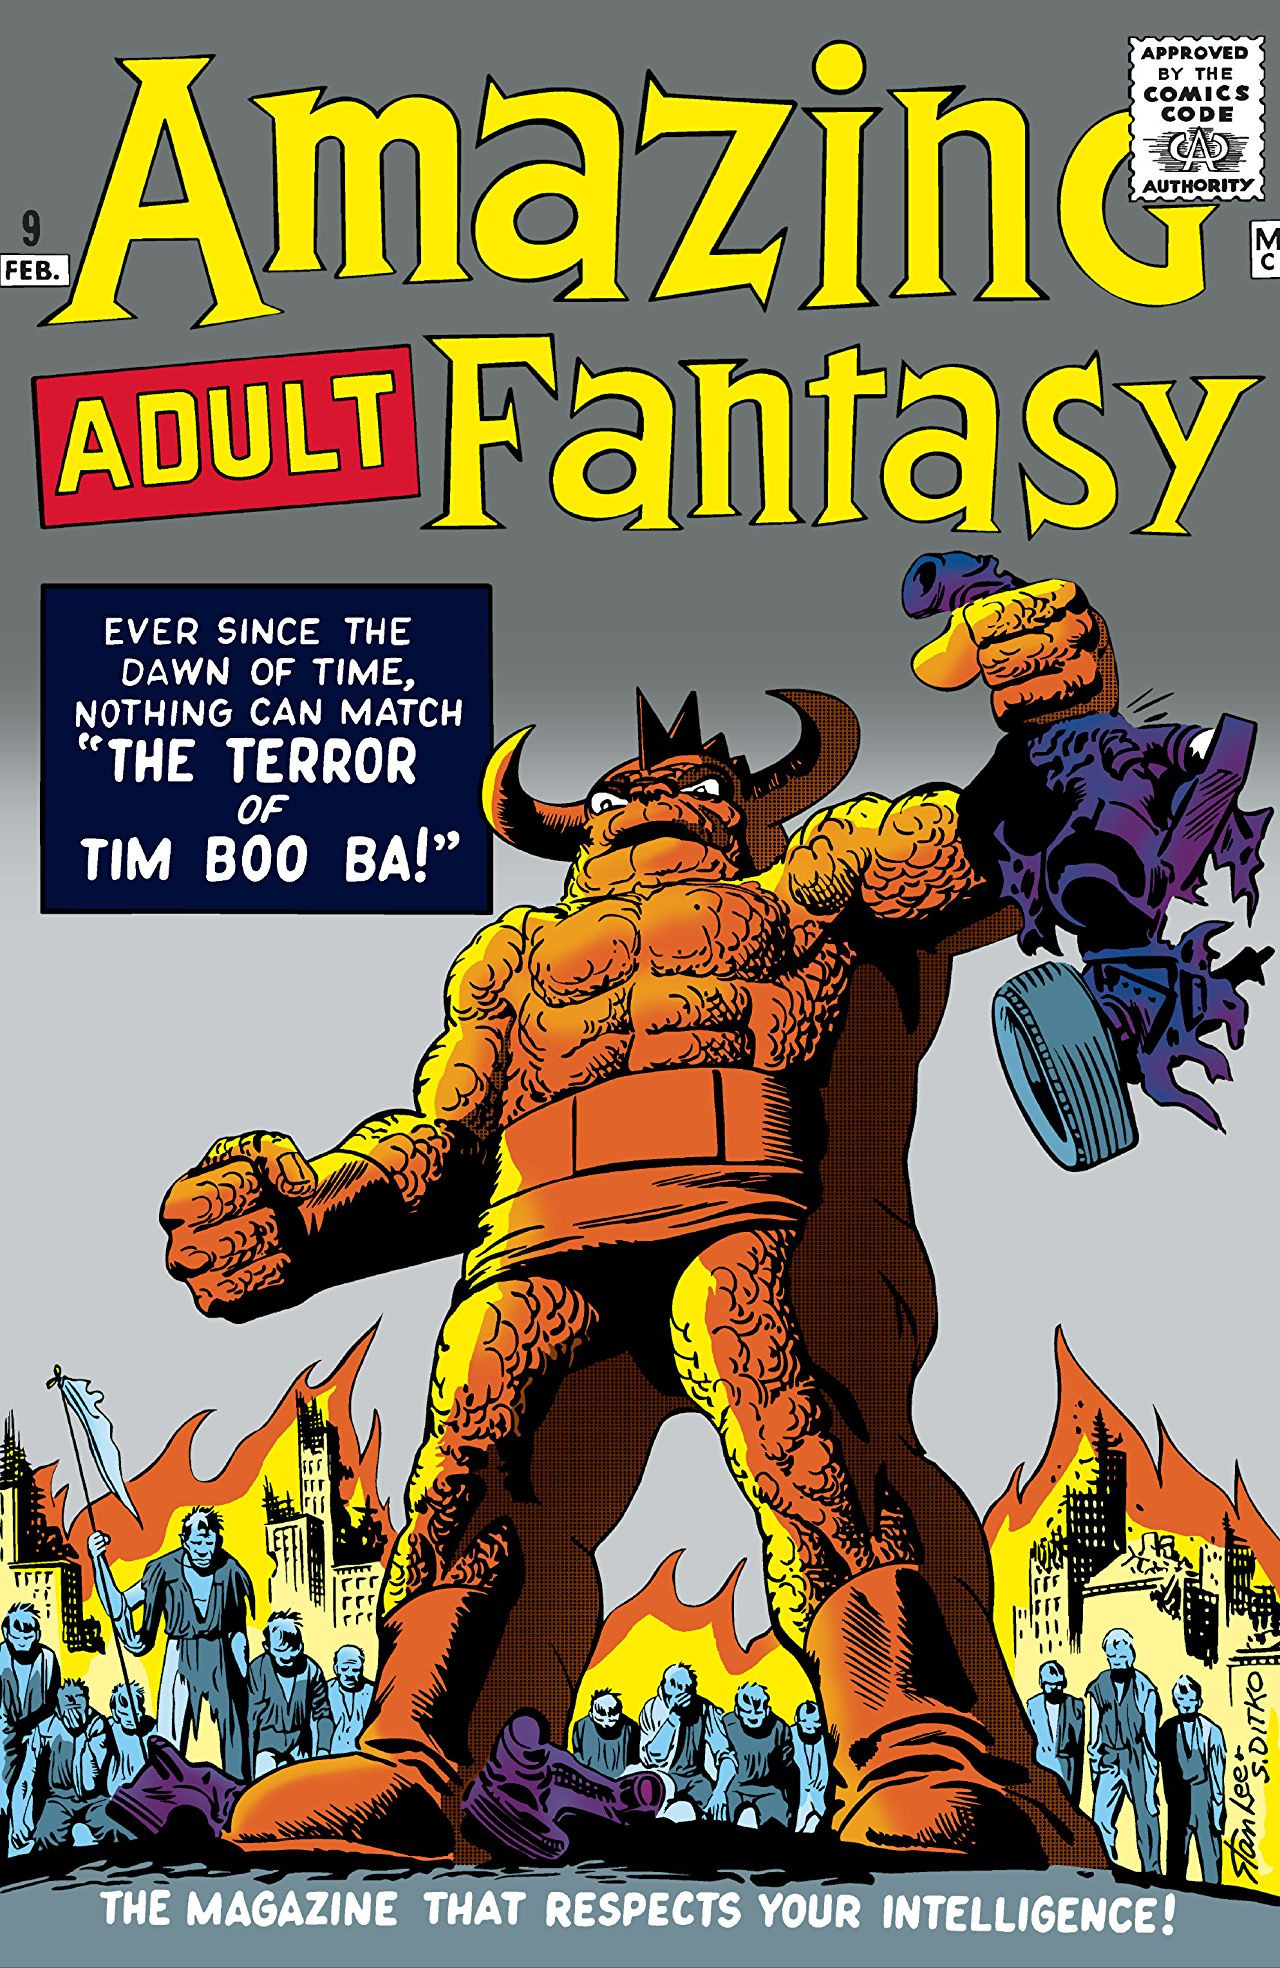 Amazing Adult Fantasy Vol 1 #9